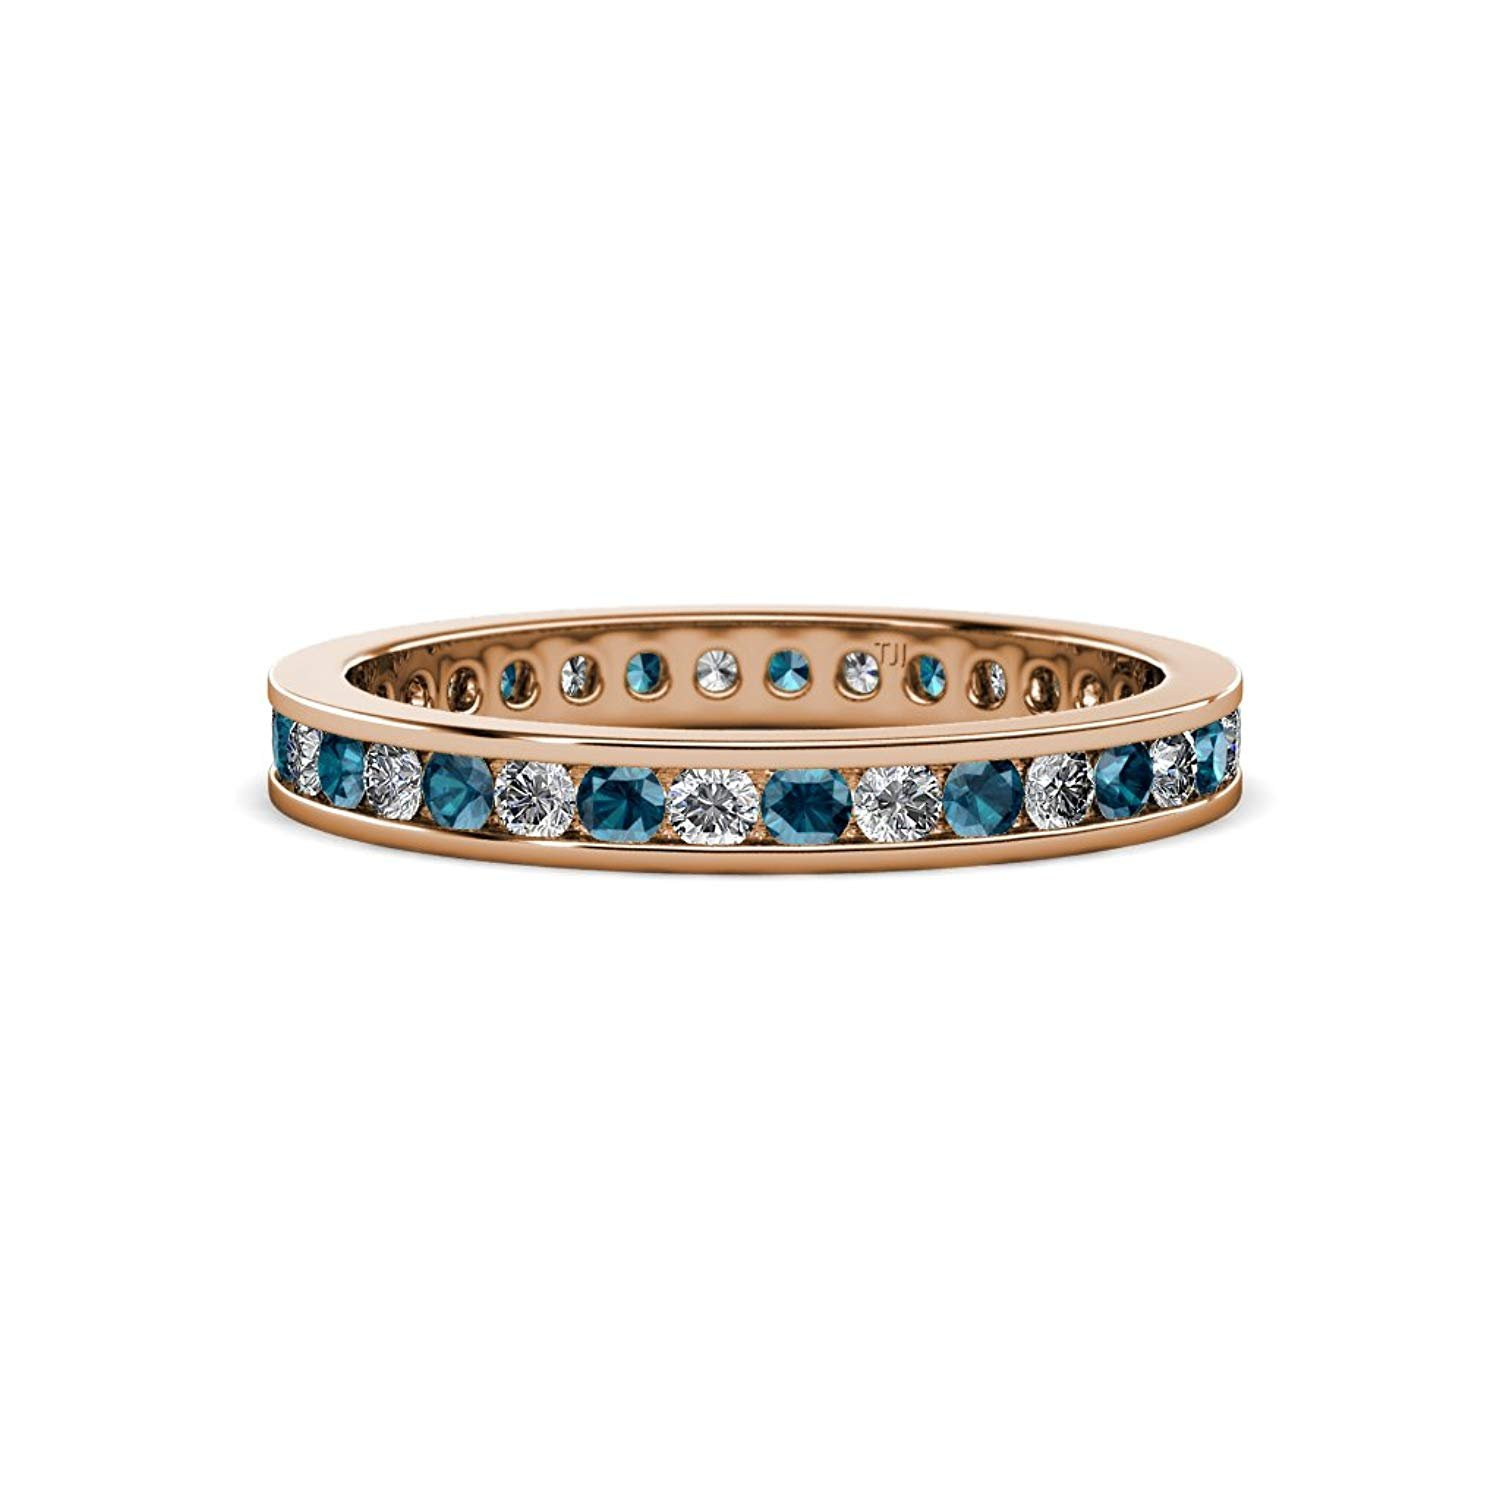 Blue and White Diamond 2mm Channel Set Eternity Band 0.81 to 0.96 Carat tw in 14K Rose Gold.size 7.0 by TriJewels